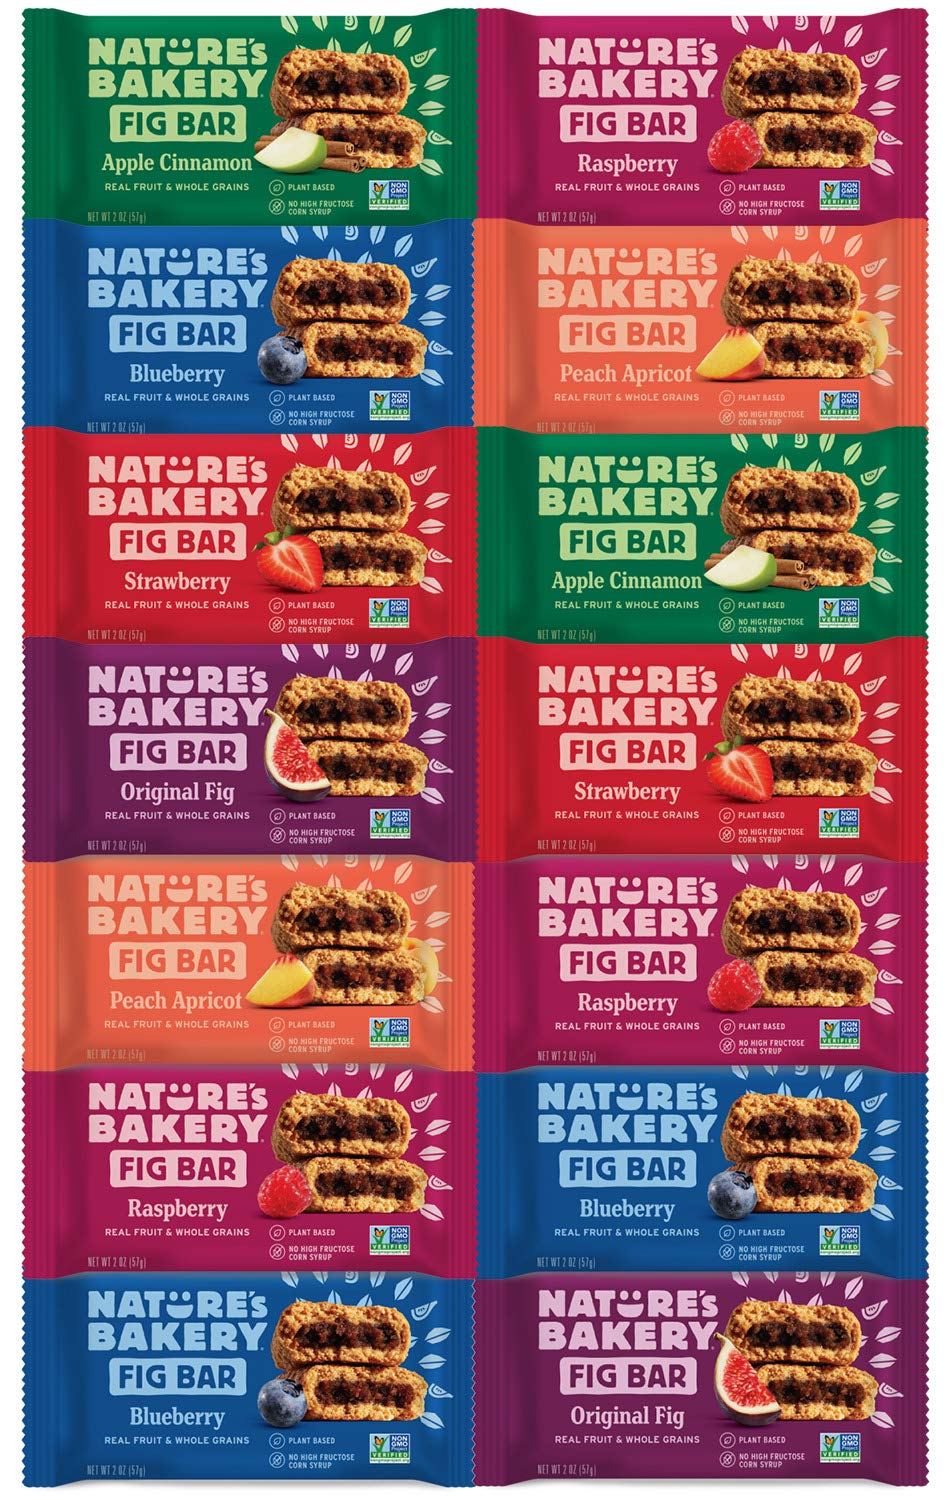 Nature's Bakery Stone Ground Whole Wheat Fig Bar Variety Pack Sampler, All Natural NON GMO Snack Food by Variety Fun (14 Count) by Custom Varietea (Image #1)